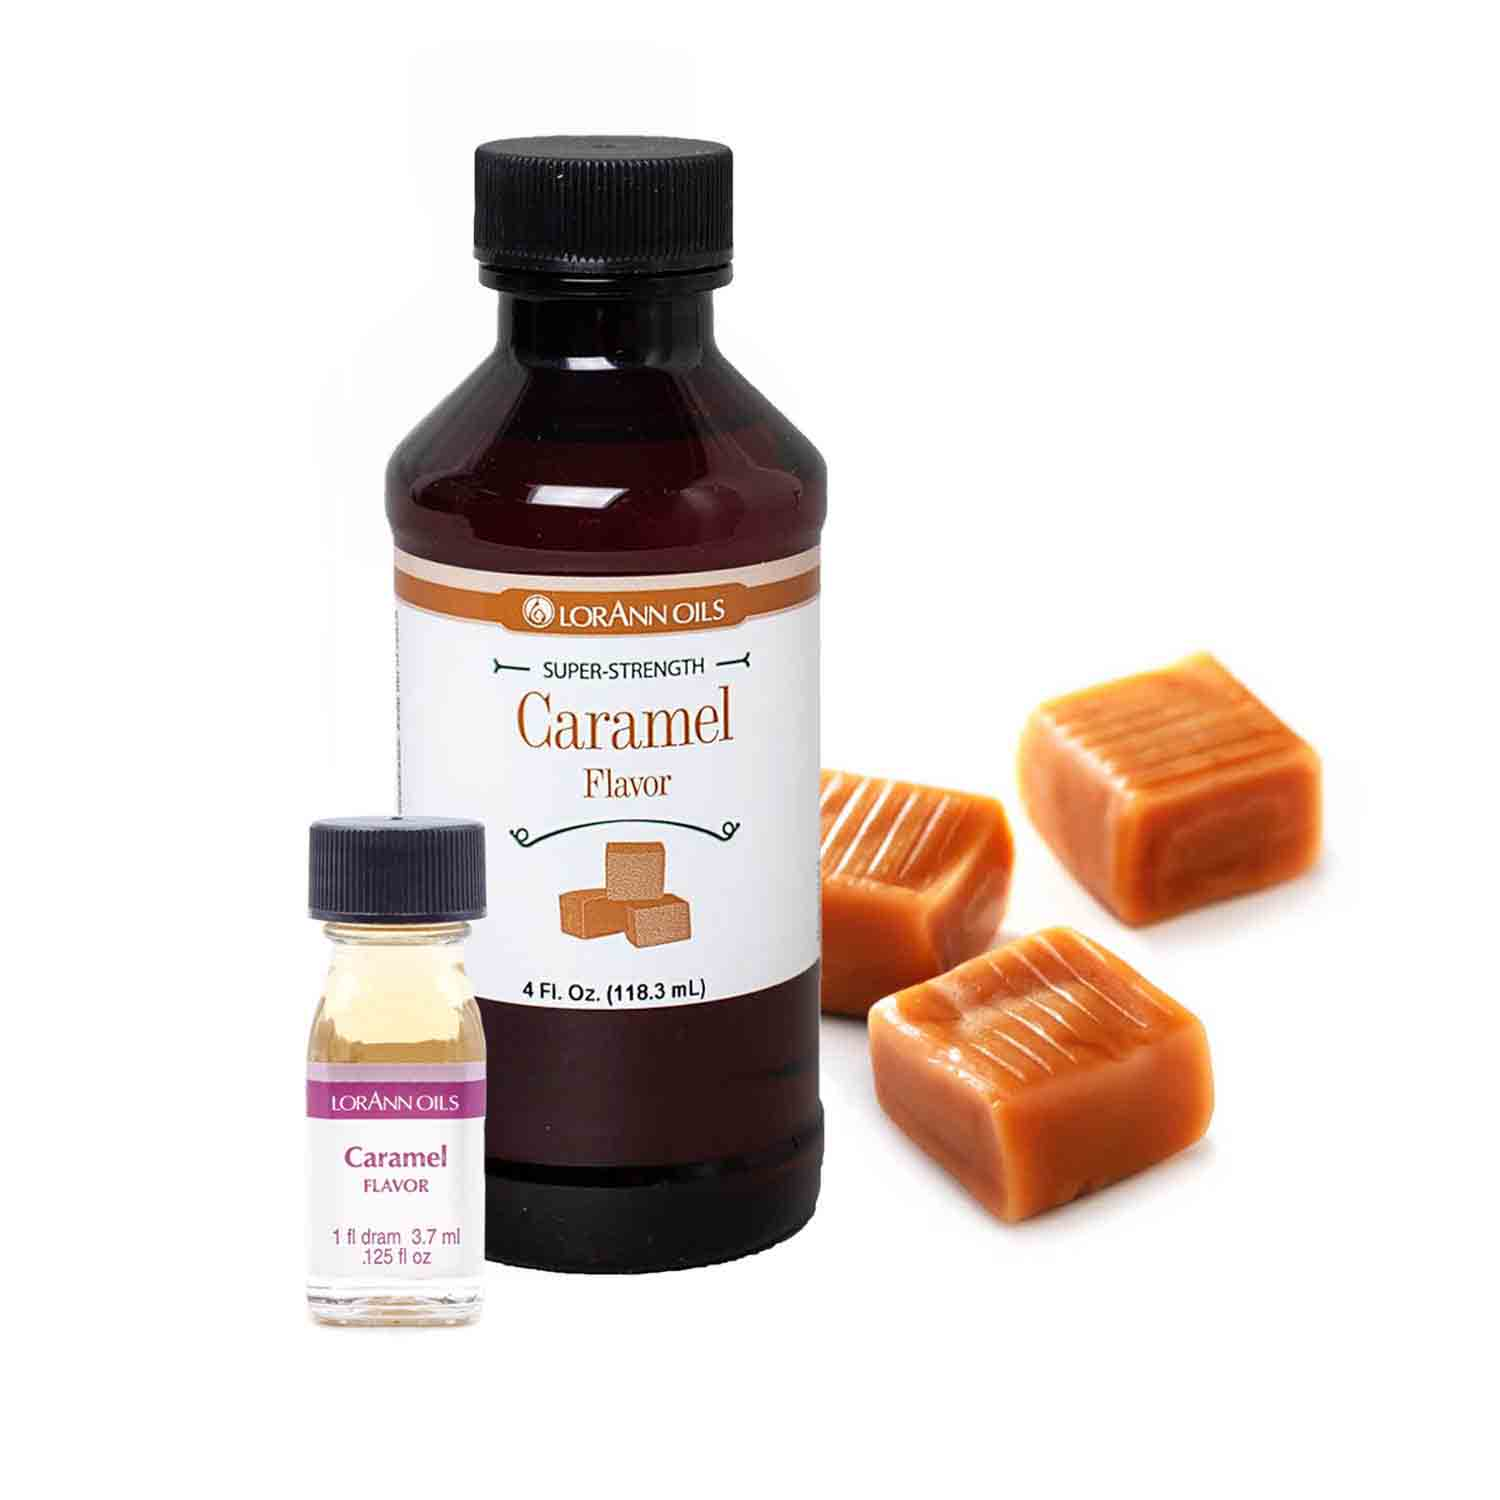 Caramel LorAnn Super-Strength Flavor